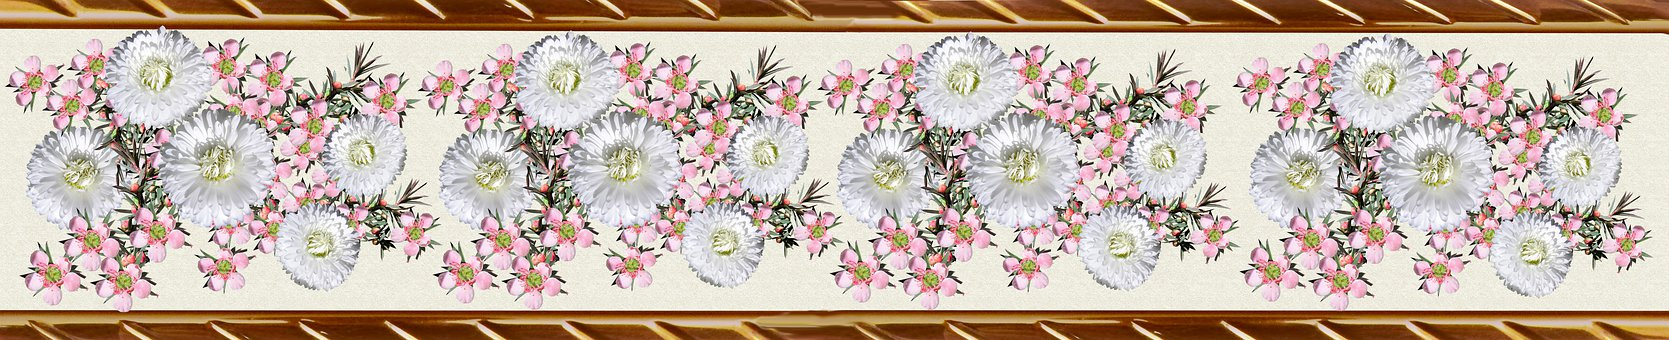 Border, Decorative Strip, Pattern, Daisies